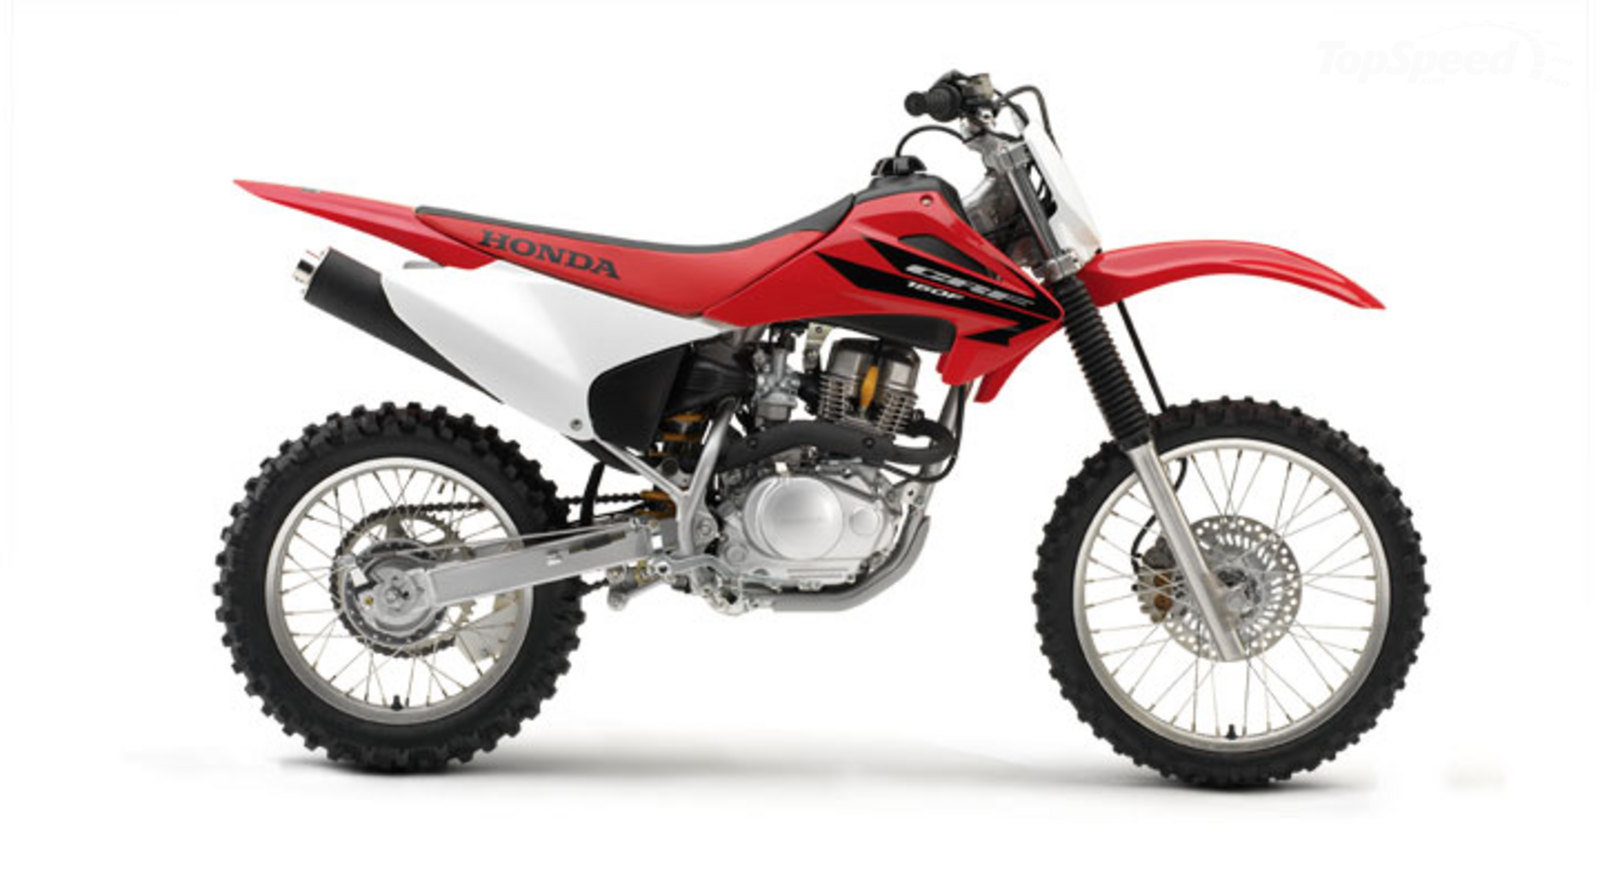 2006 Honda CRF150F Review - Top Speed